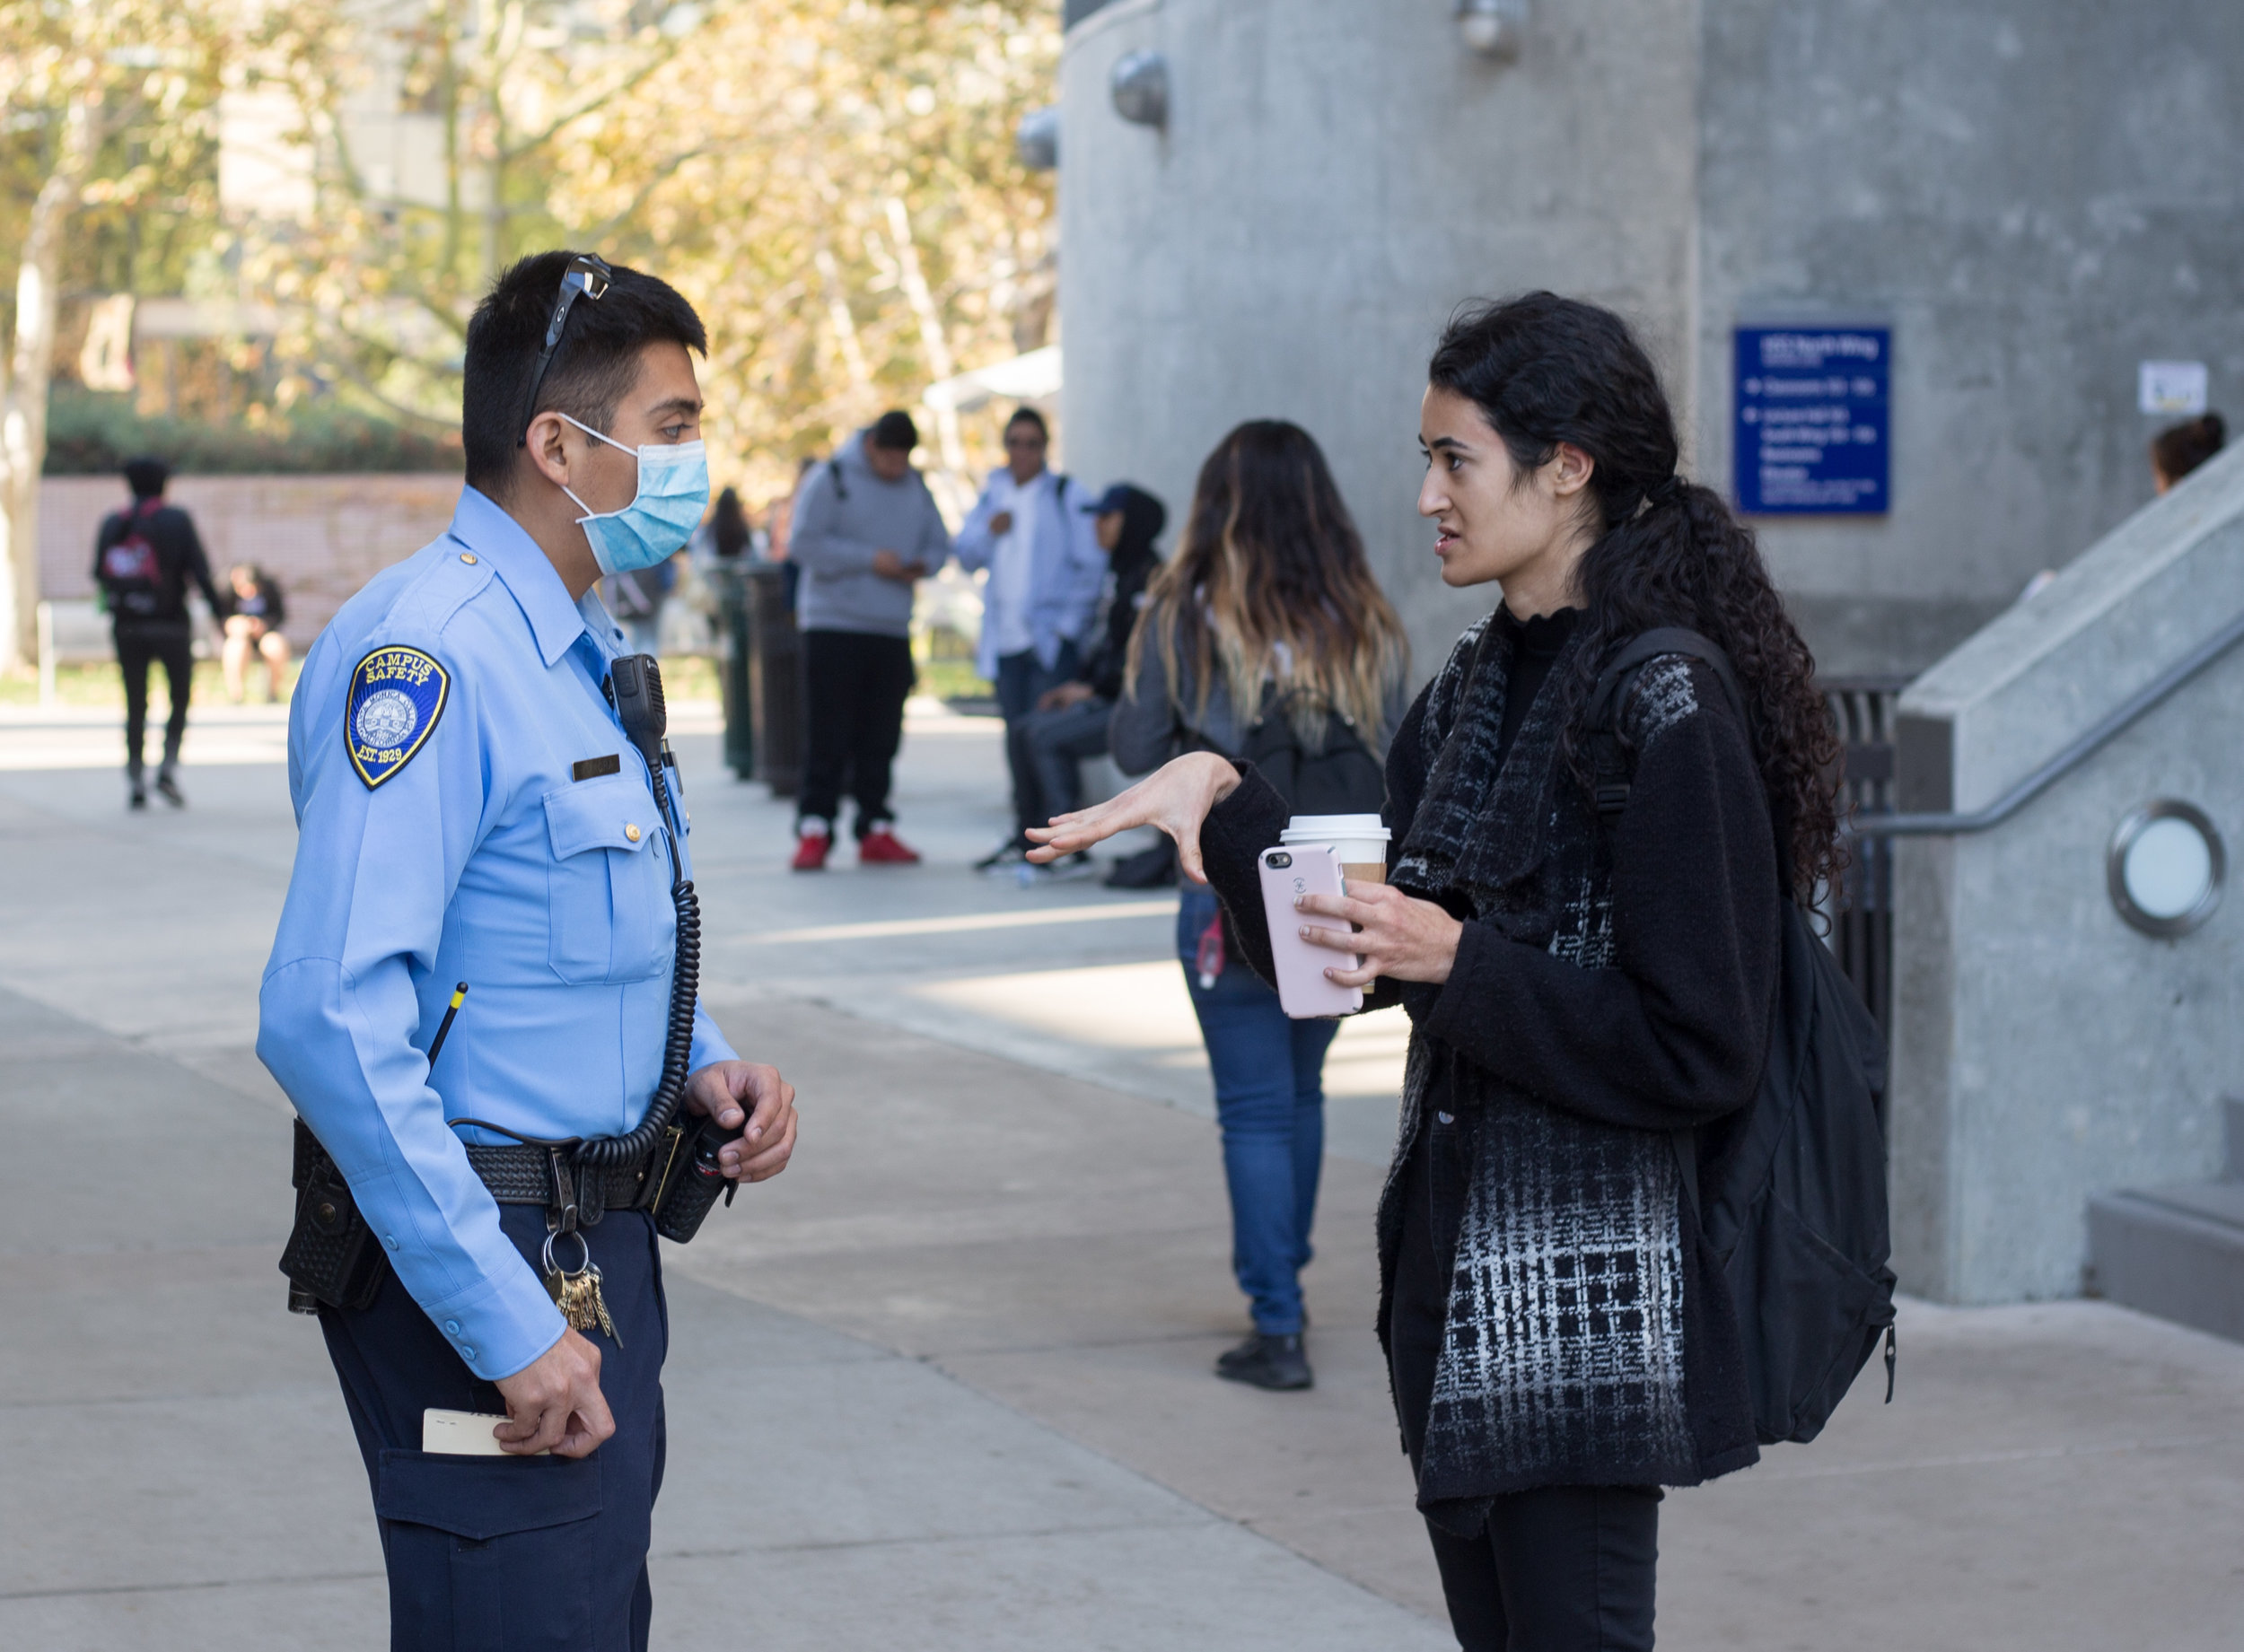 """A Santa Monica Student (right) asks Campus Safety Officer Zamora (left) about why all classes were canceled after an email was sent out at 8:49 am by SMC informing students that classes are canceled due to the close proximity to the Skirball fire on Wednesday, December 6th 2017 in Santa Monica, Calif. The email stated that the """"fire is affecting the air quality and the road conditions in and around SMC area"""". (Photo by: Thane Fernandes)"""